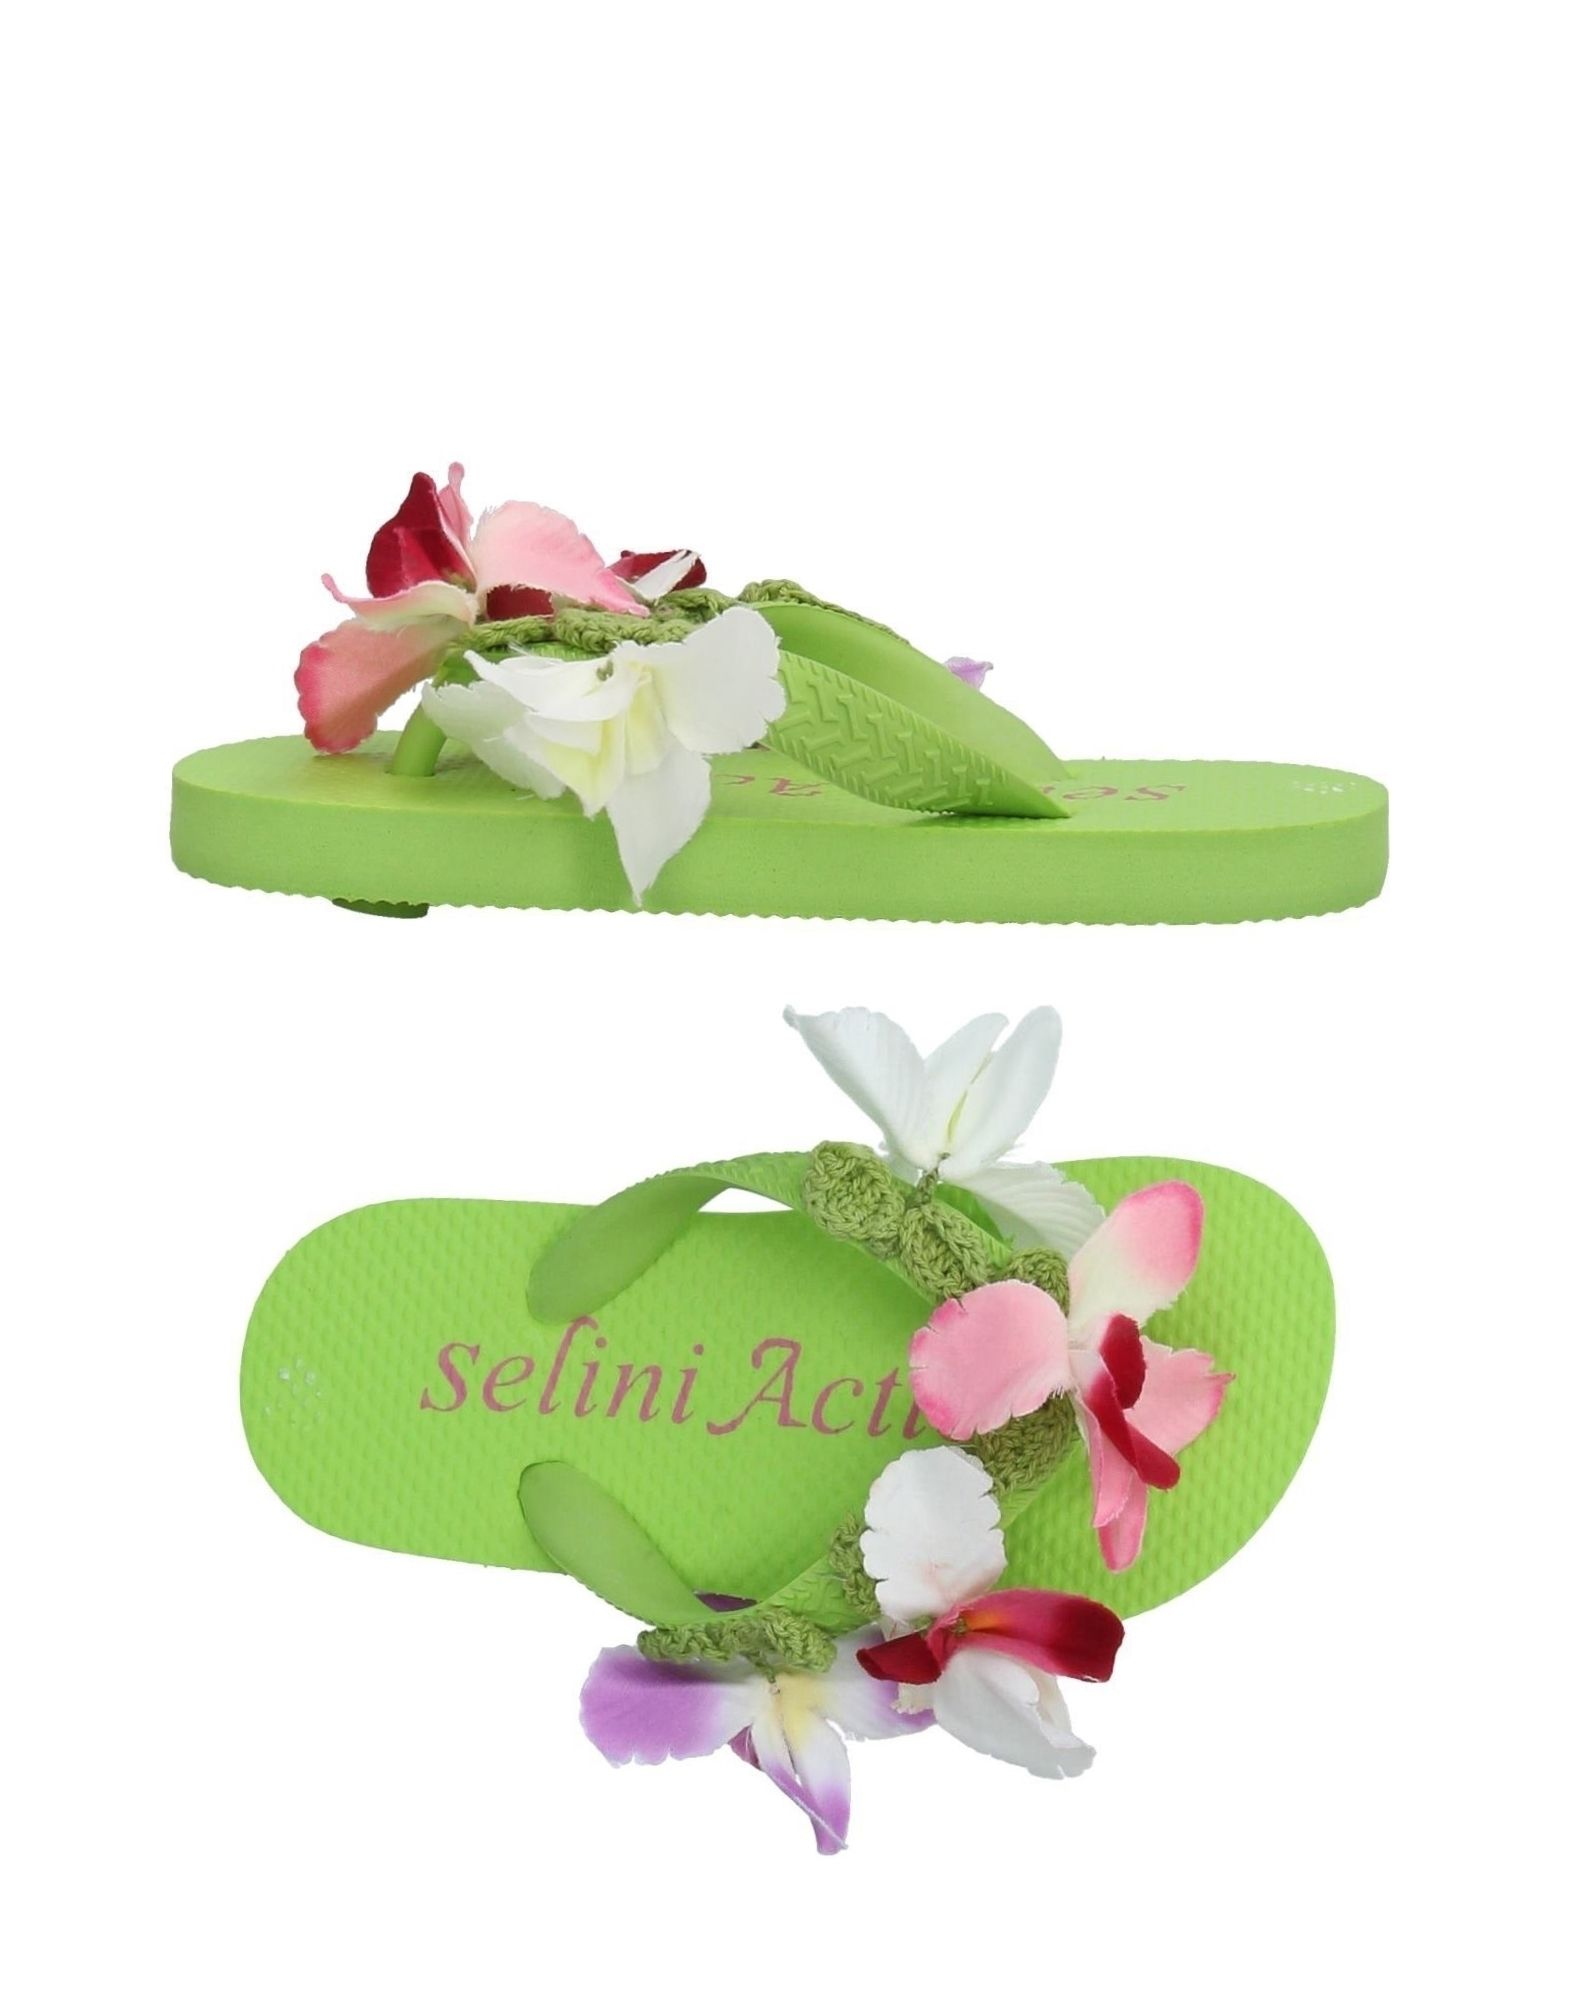 7a8fcc27e78 Selini Action Beach Footwear Girl 3-8 years online on YOOX Netherlands